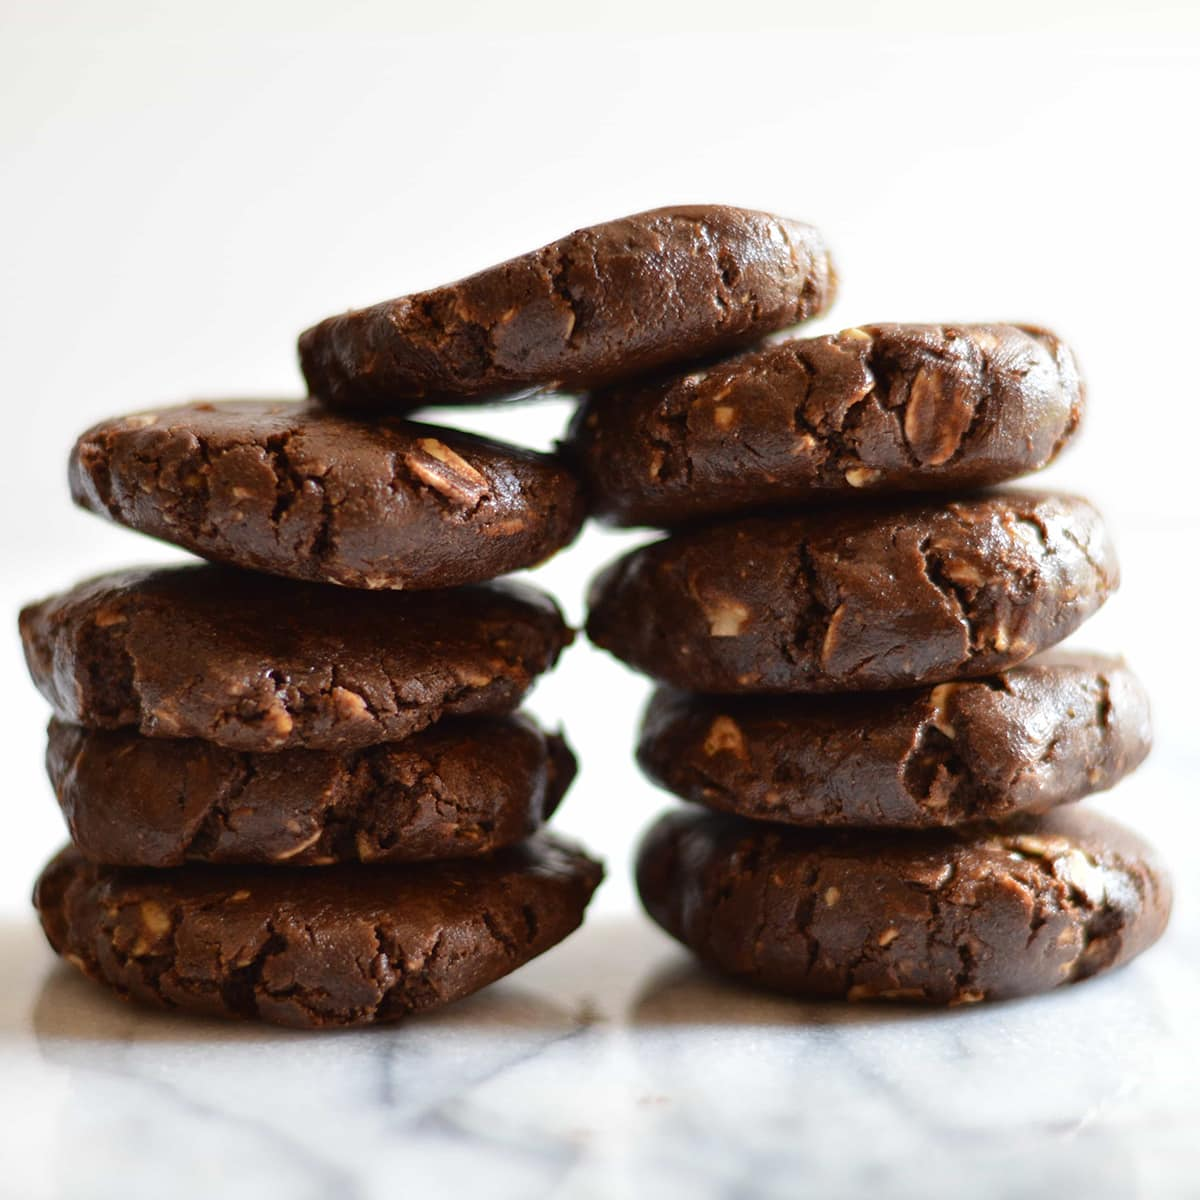 Chocolate No Bake Shakeology Cookies on a marble surface.